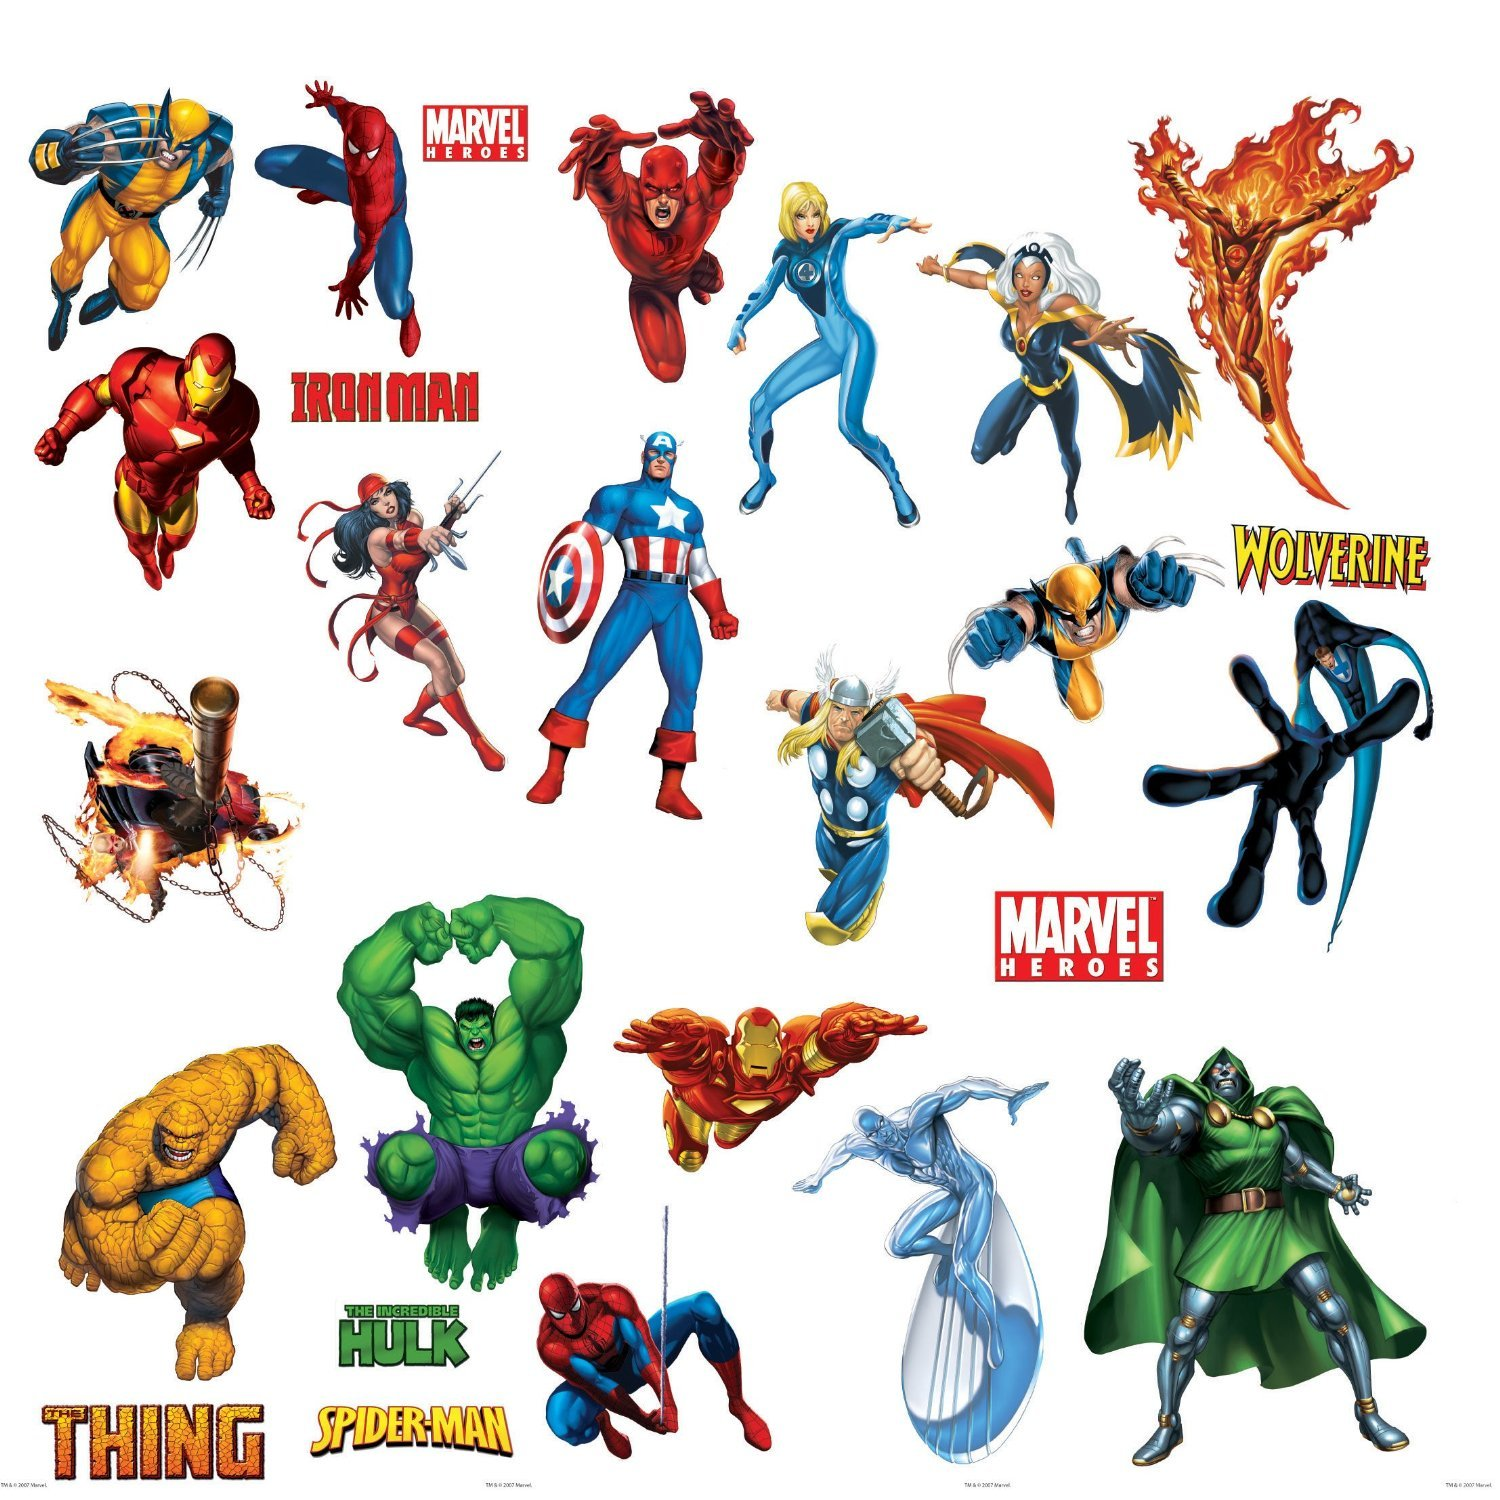 Marvel Heroes Comic - Spider-man, Captain America, Hulk, Fantastic 4, Thing, Thor, Wolverine, Ironman, Ghost Rider Wall Decal by Marvel Movies